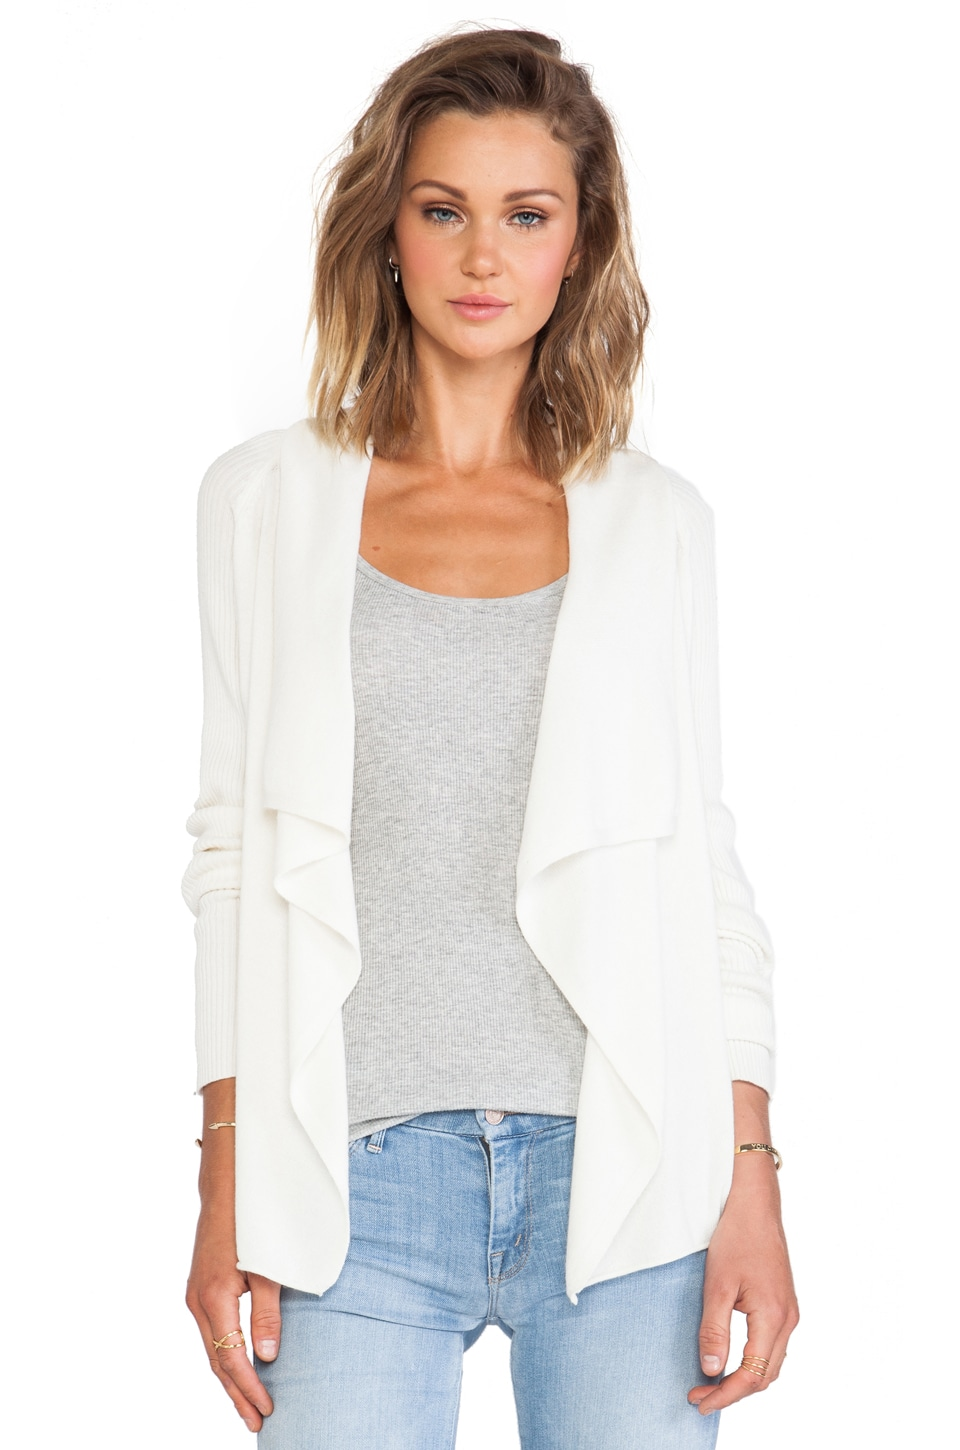 drape dsc sweater drapes products hive cardigan the front